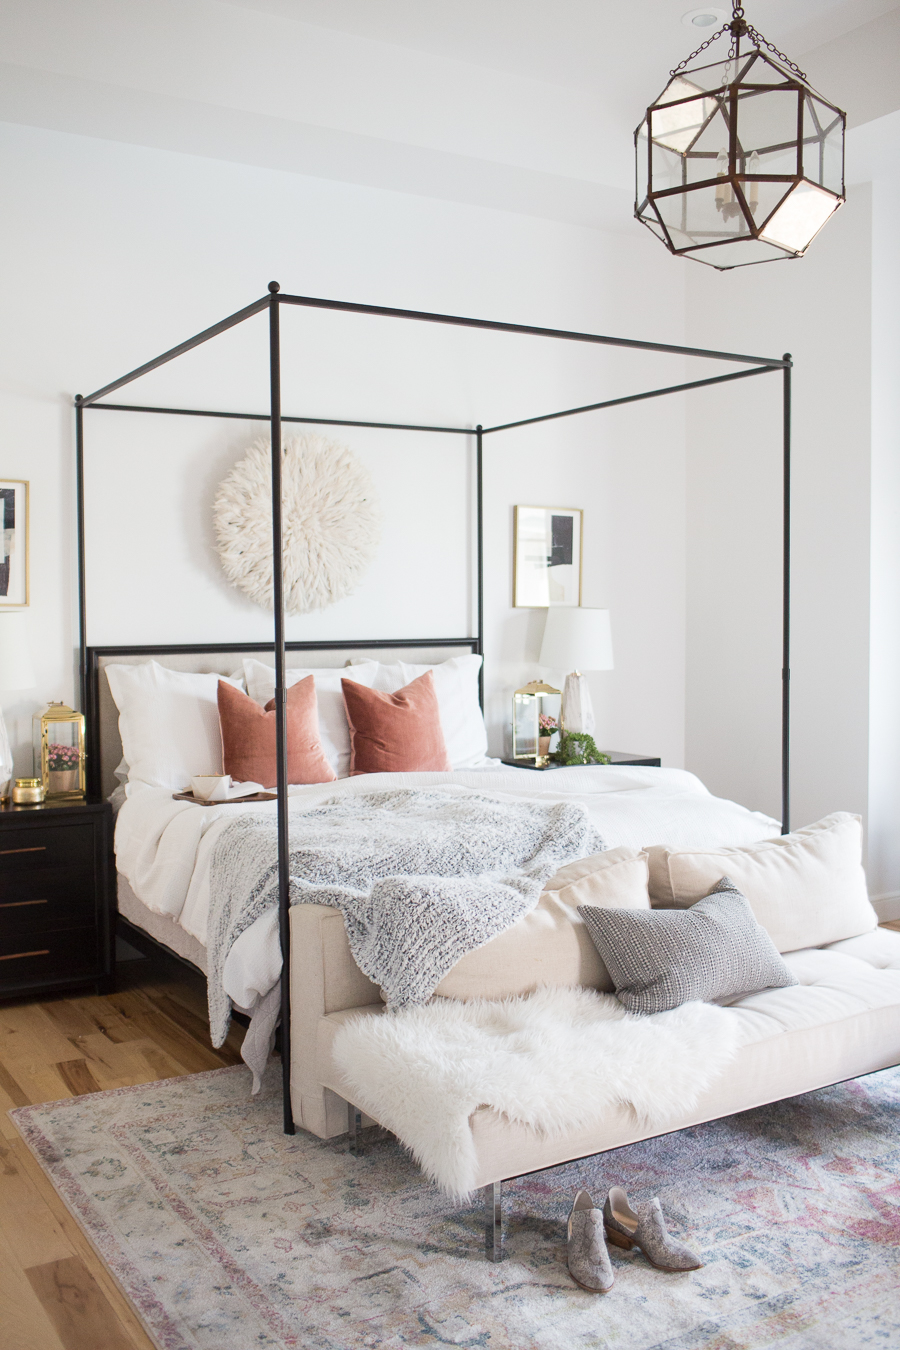 Image of: Refresh Your Master Bedroom And Bath With Pottery Barn